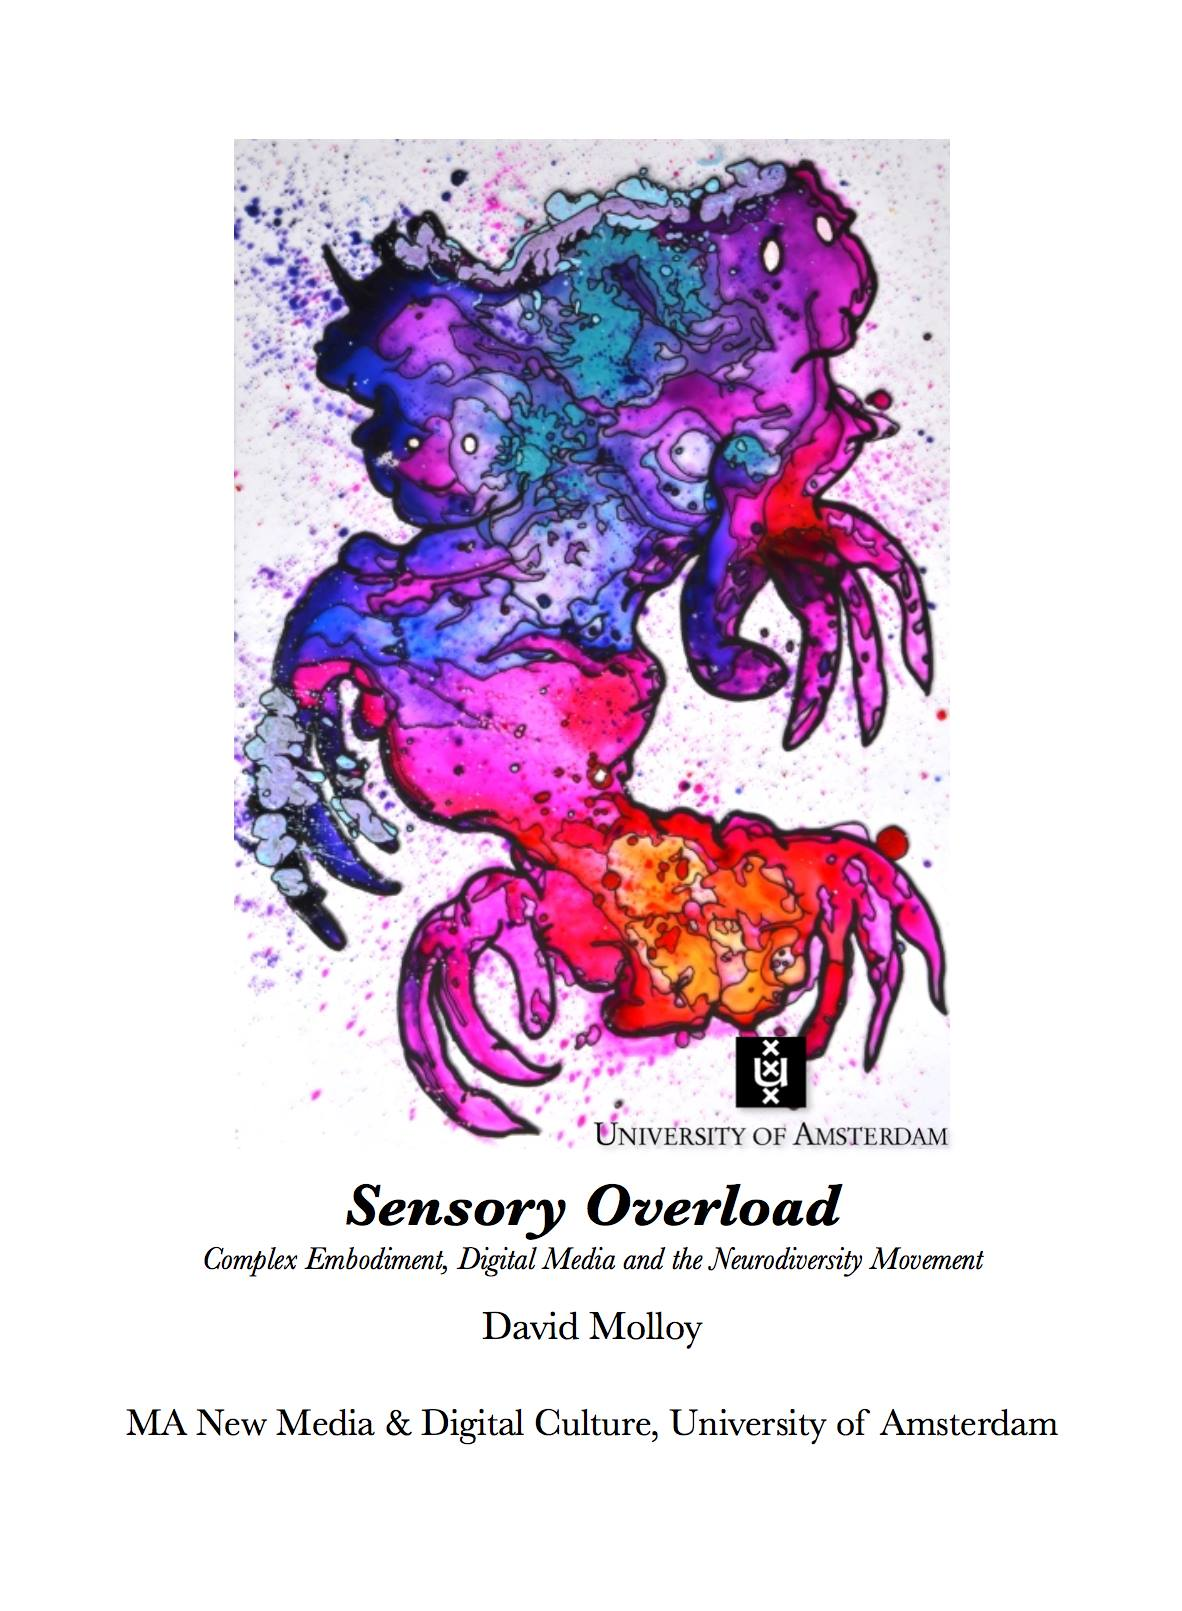 Sensory Overload: New Media and Neurodiversity – An introduction